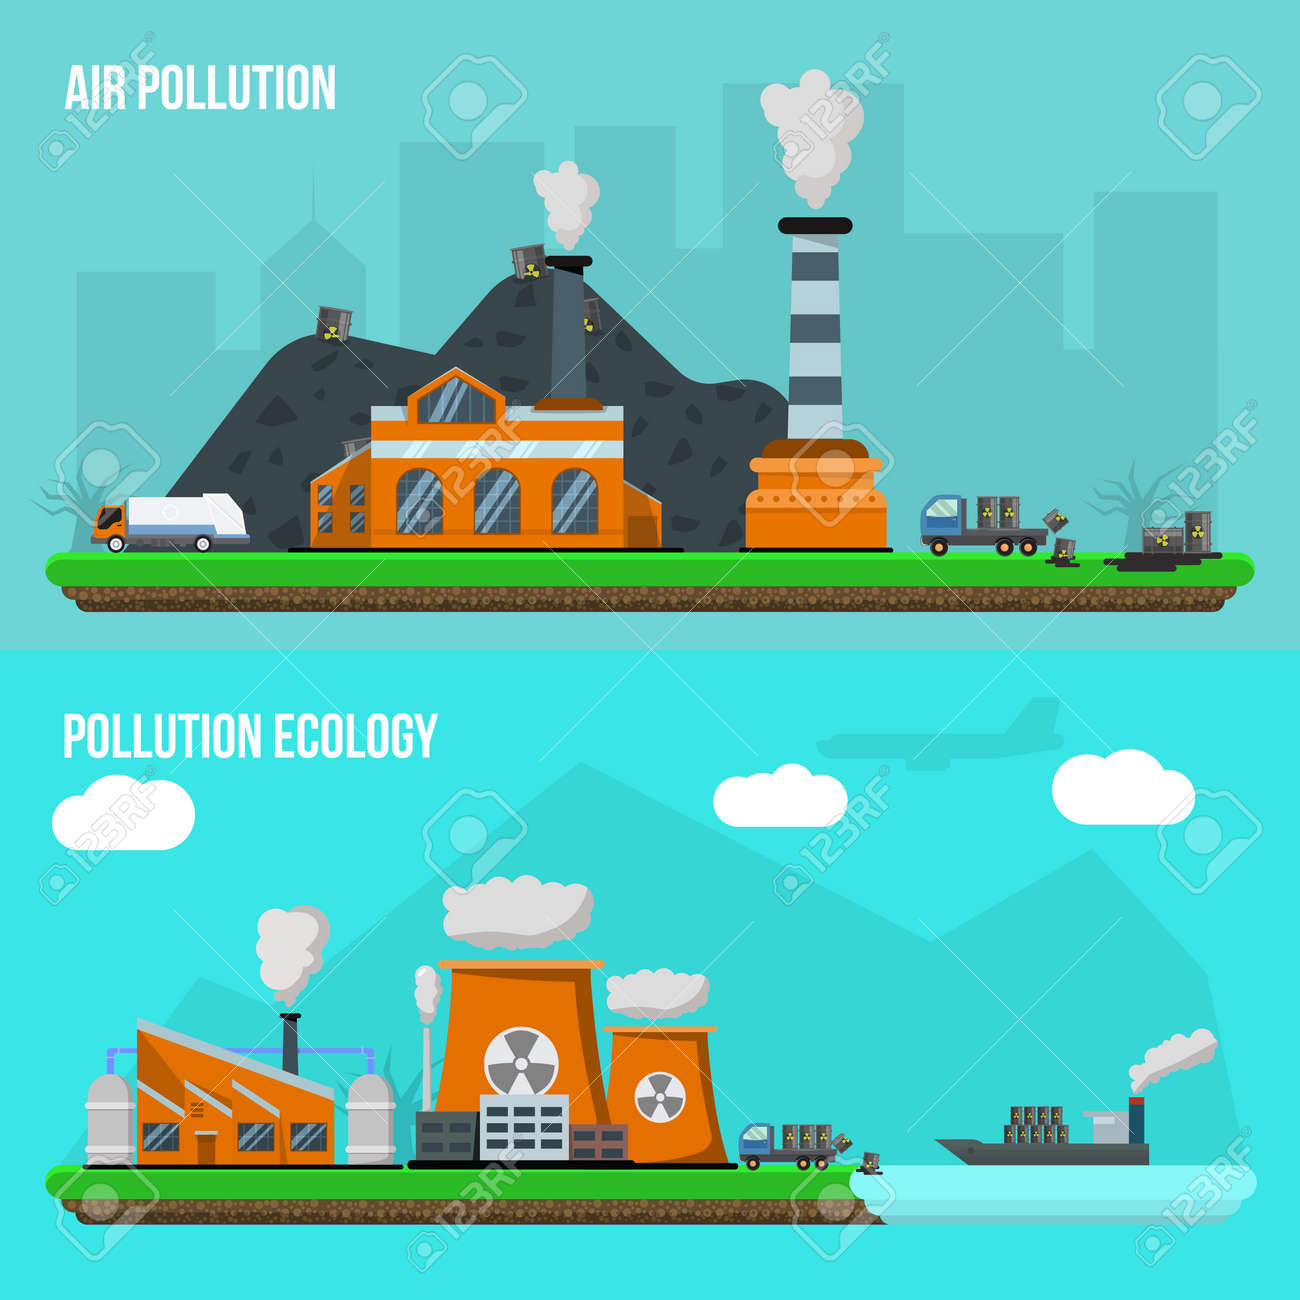 Two horizontal environmental pollution banner set with descriptions of air pollution and pollution ecology vector illustration - 166687493